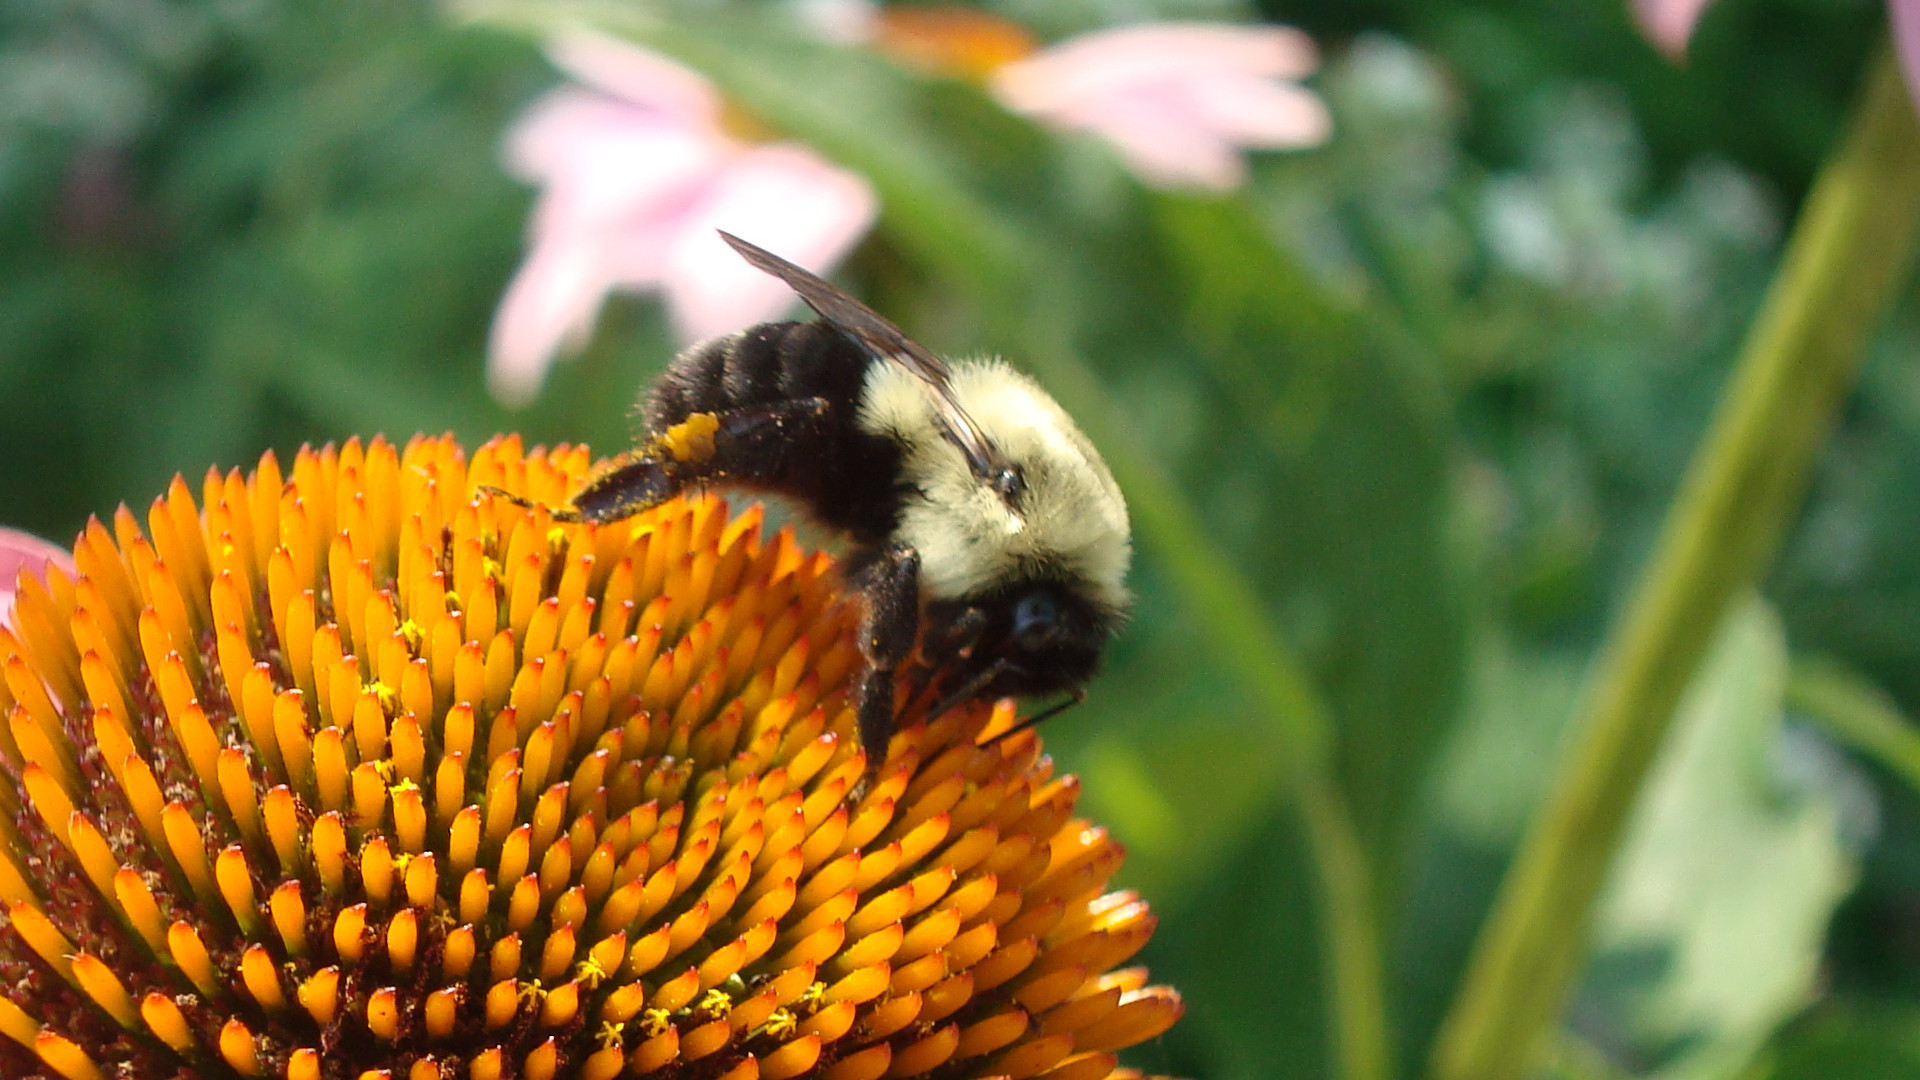 Why Does It Take So Long to Phase Out Bee-killing Neonic